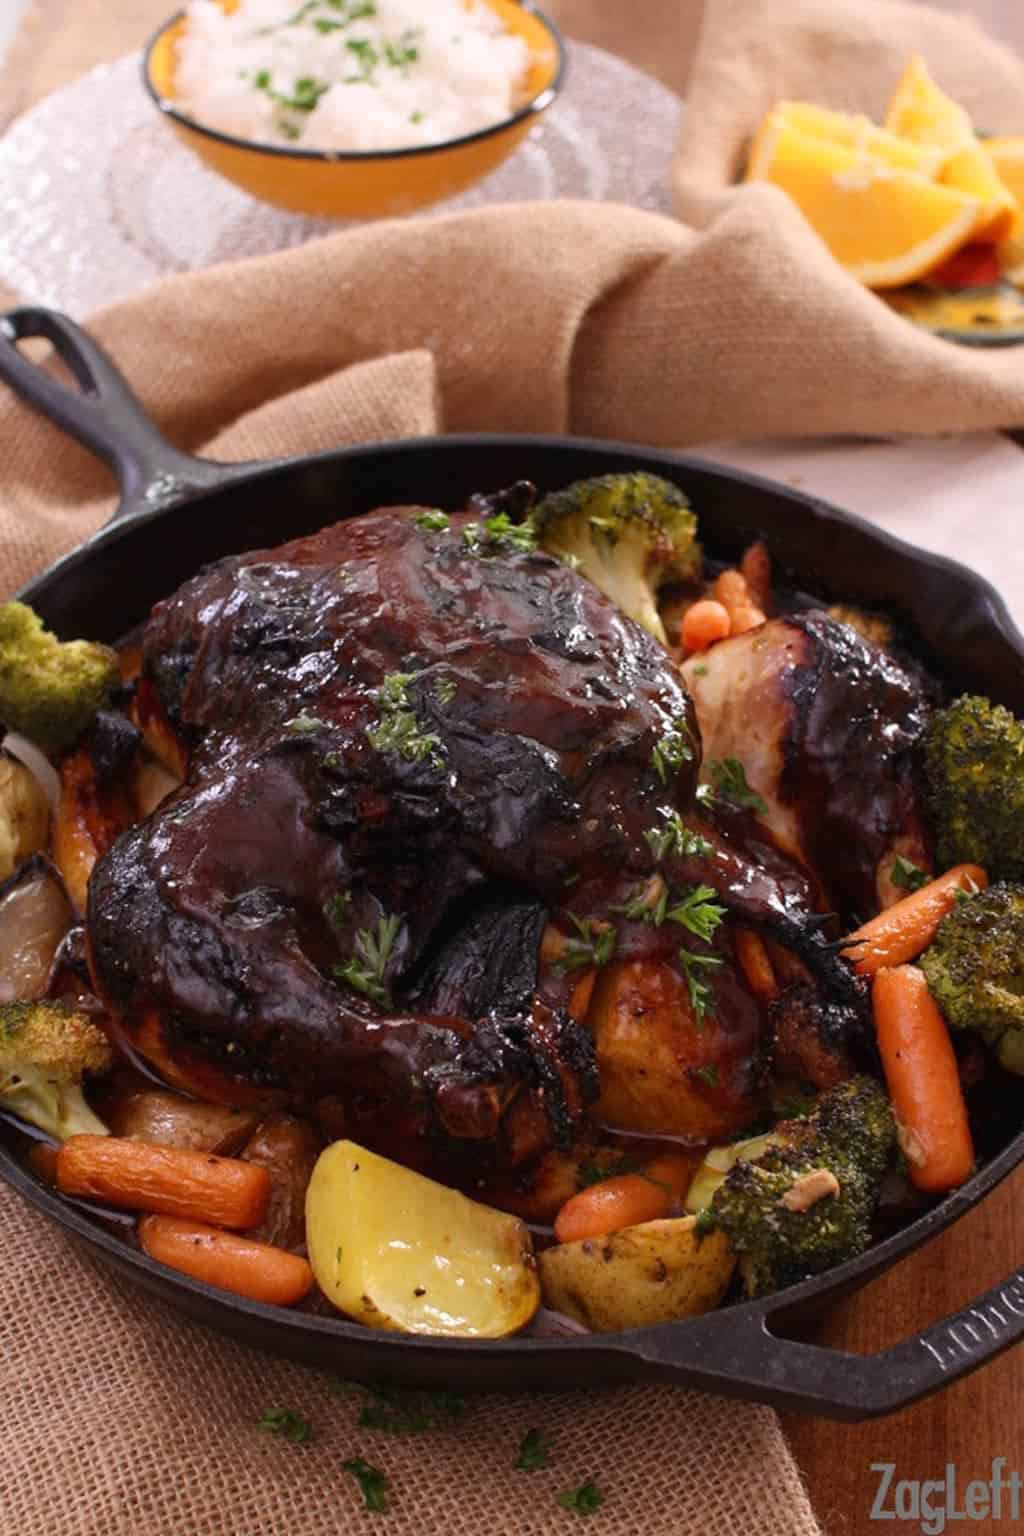 Baked chicken covered with bbq sauce with baby carrots, broccoli florets, and potatoes in a cast iron skillet with a small bowl of white rice and a small plate of orange slices in the background